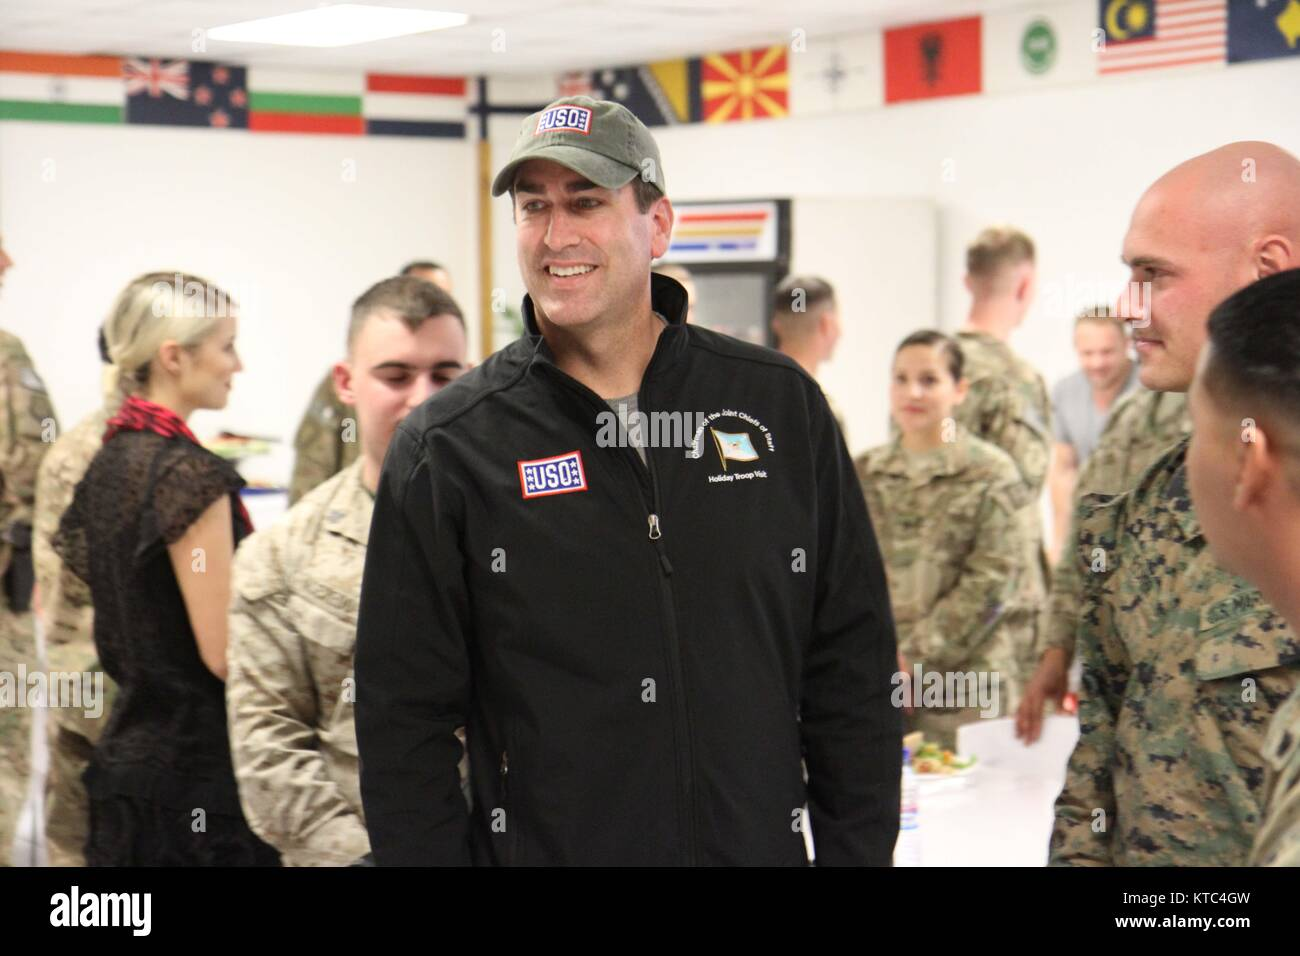 Comedian Rob Riggle chats with military service members during the USO Holiday troop visit at Bagram Air Field December - Stock Image